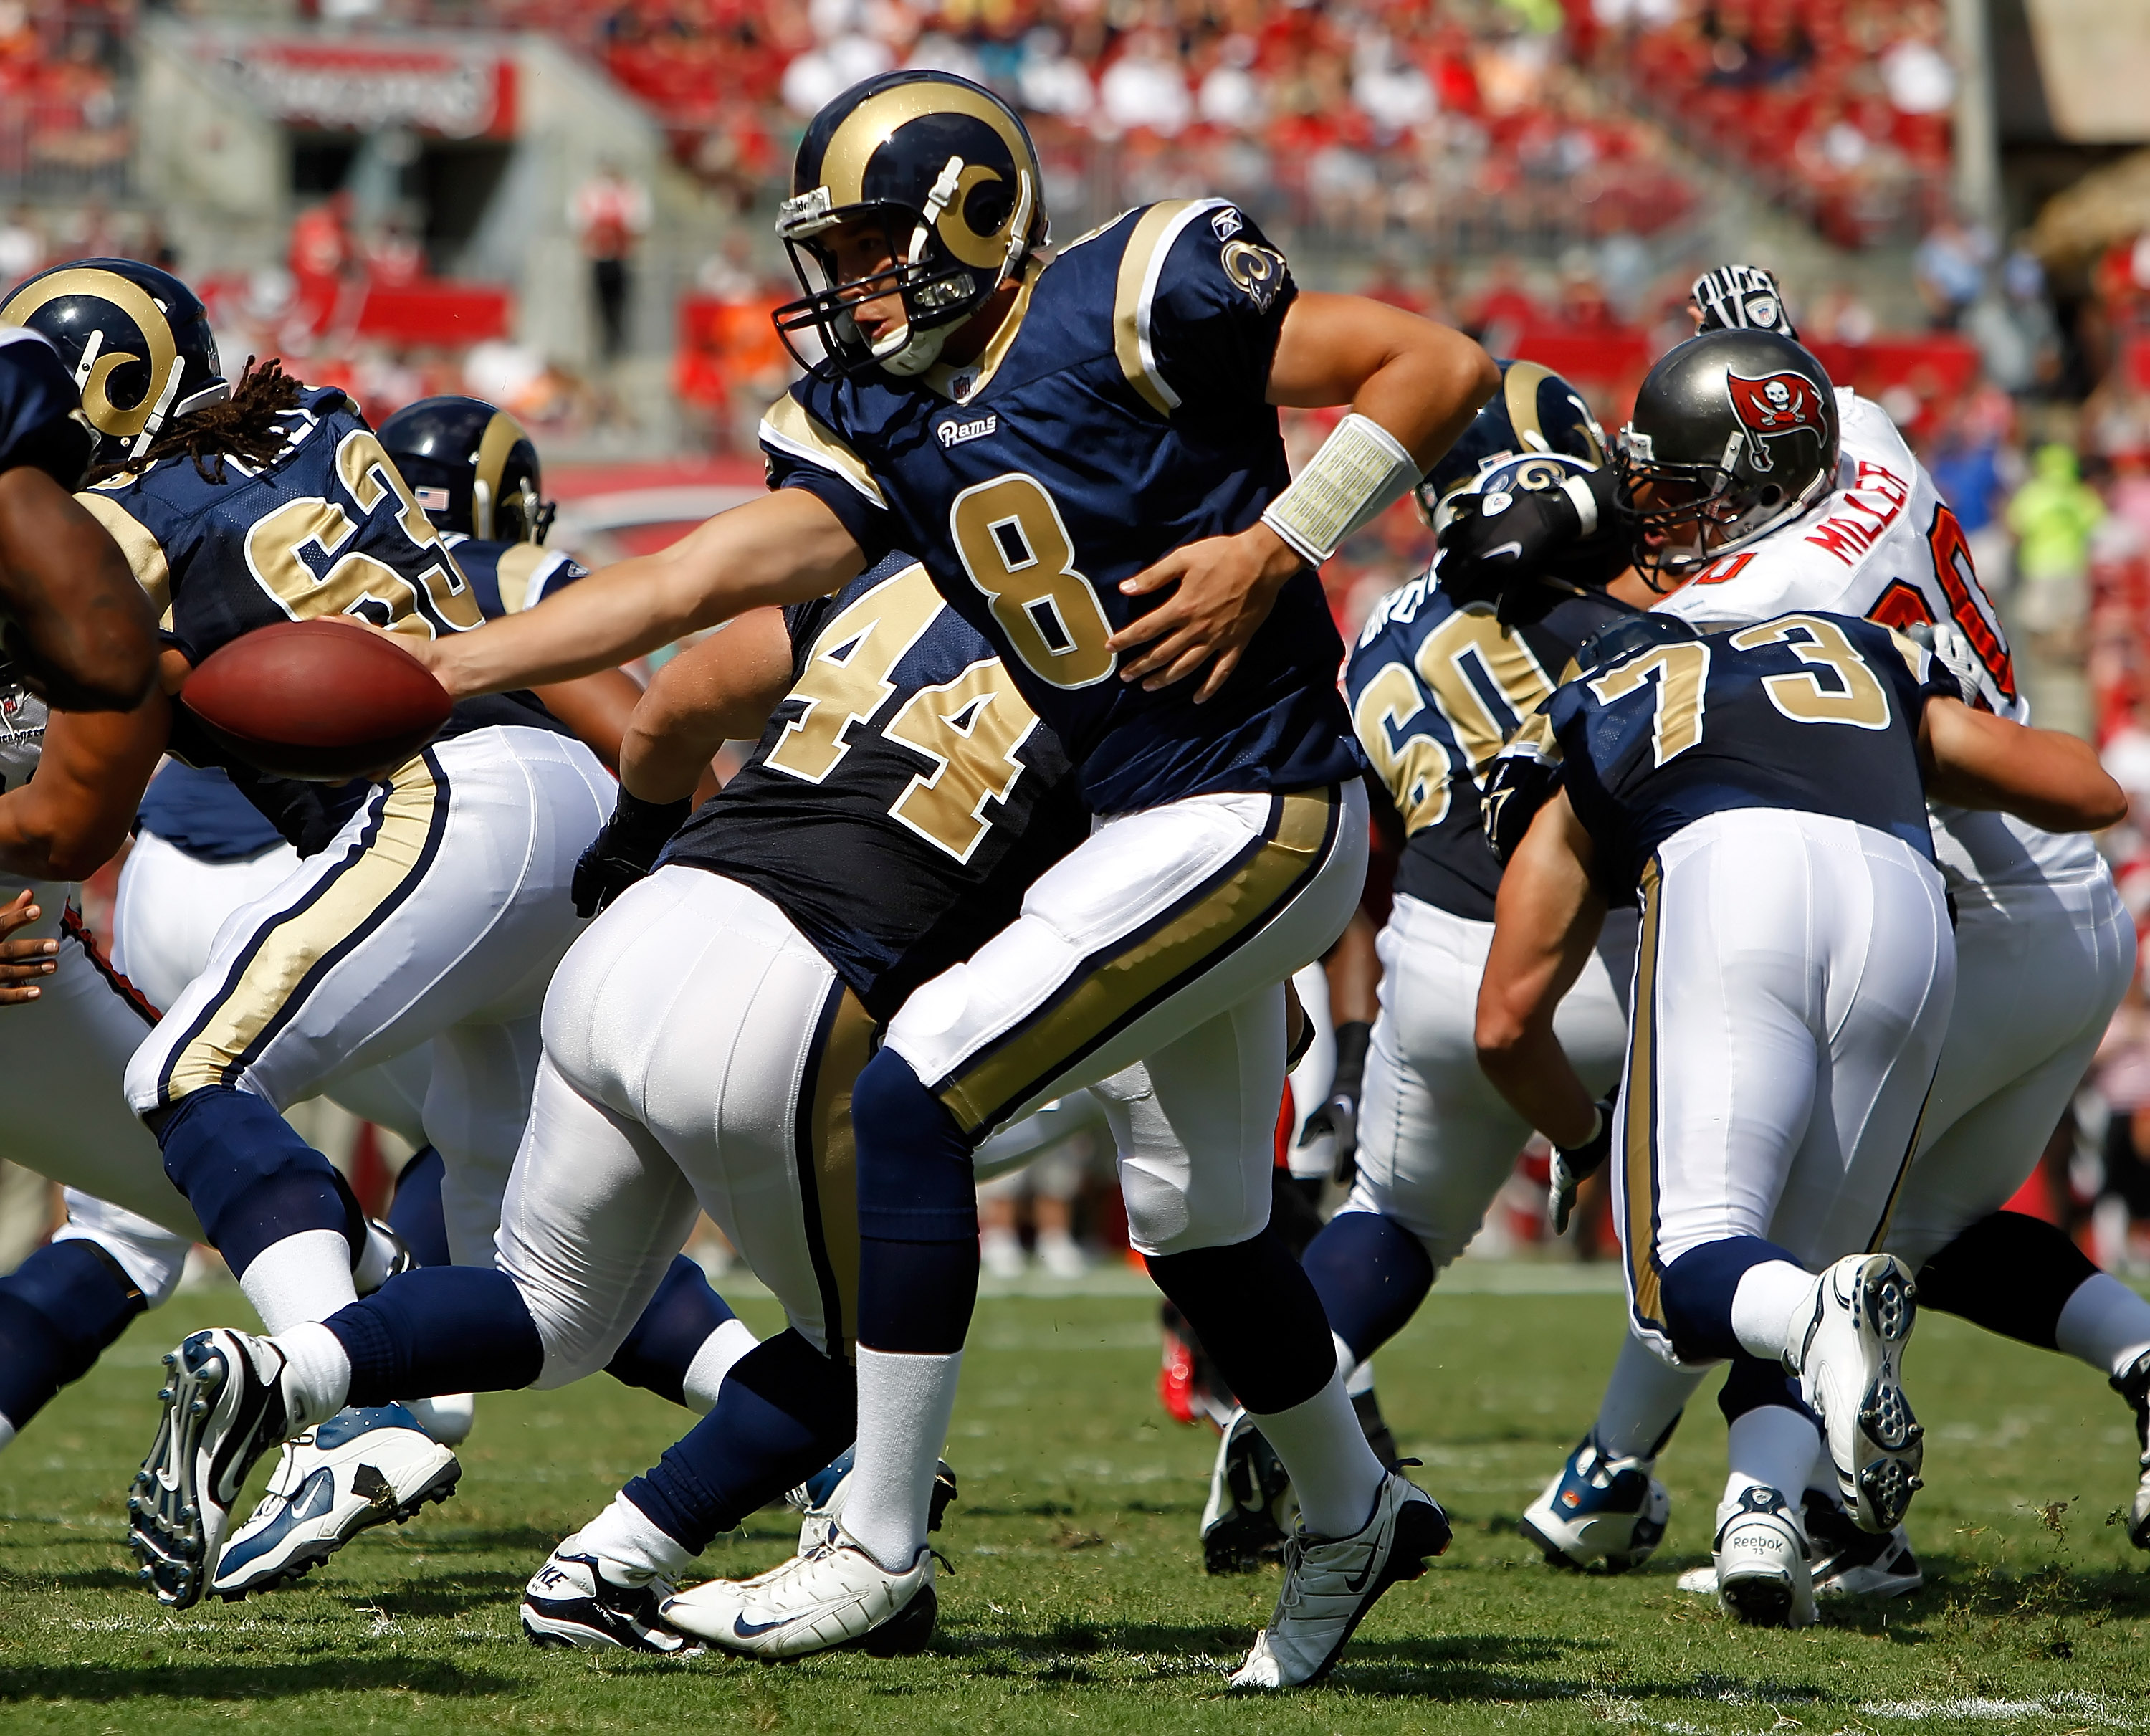 TAMPA, FL - OCTOBER 24:  Quarterback Sam Bradford #8 of the St. Louis Rams hands the ball off against the Tampa Bay Buccaneers during the game at Raymond James Stadium on October 24, 2010 in Tampa, Florida.  (Photo by J. Meric/Getty Images)